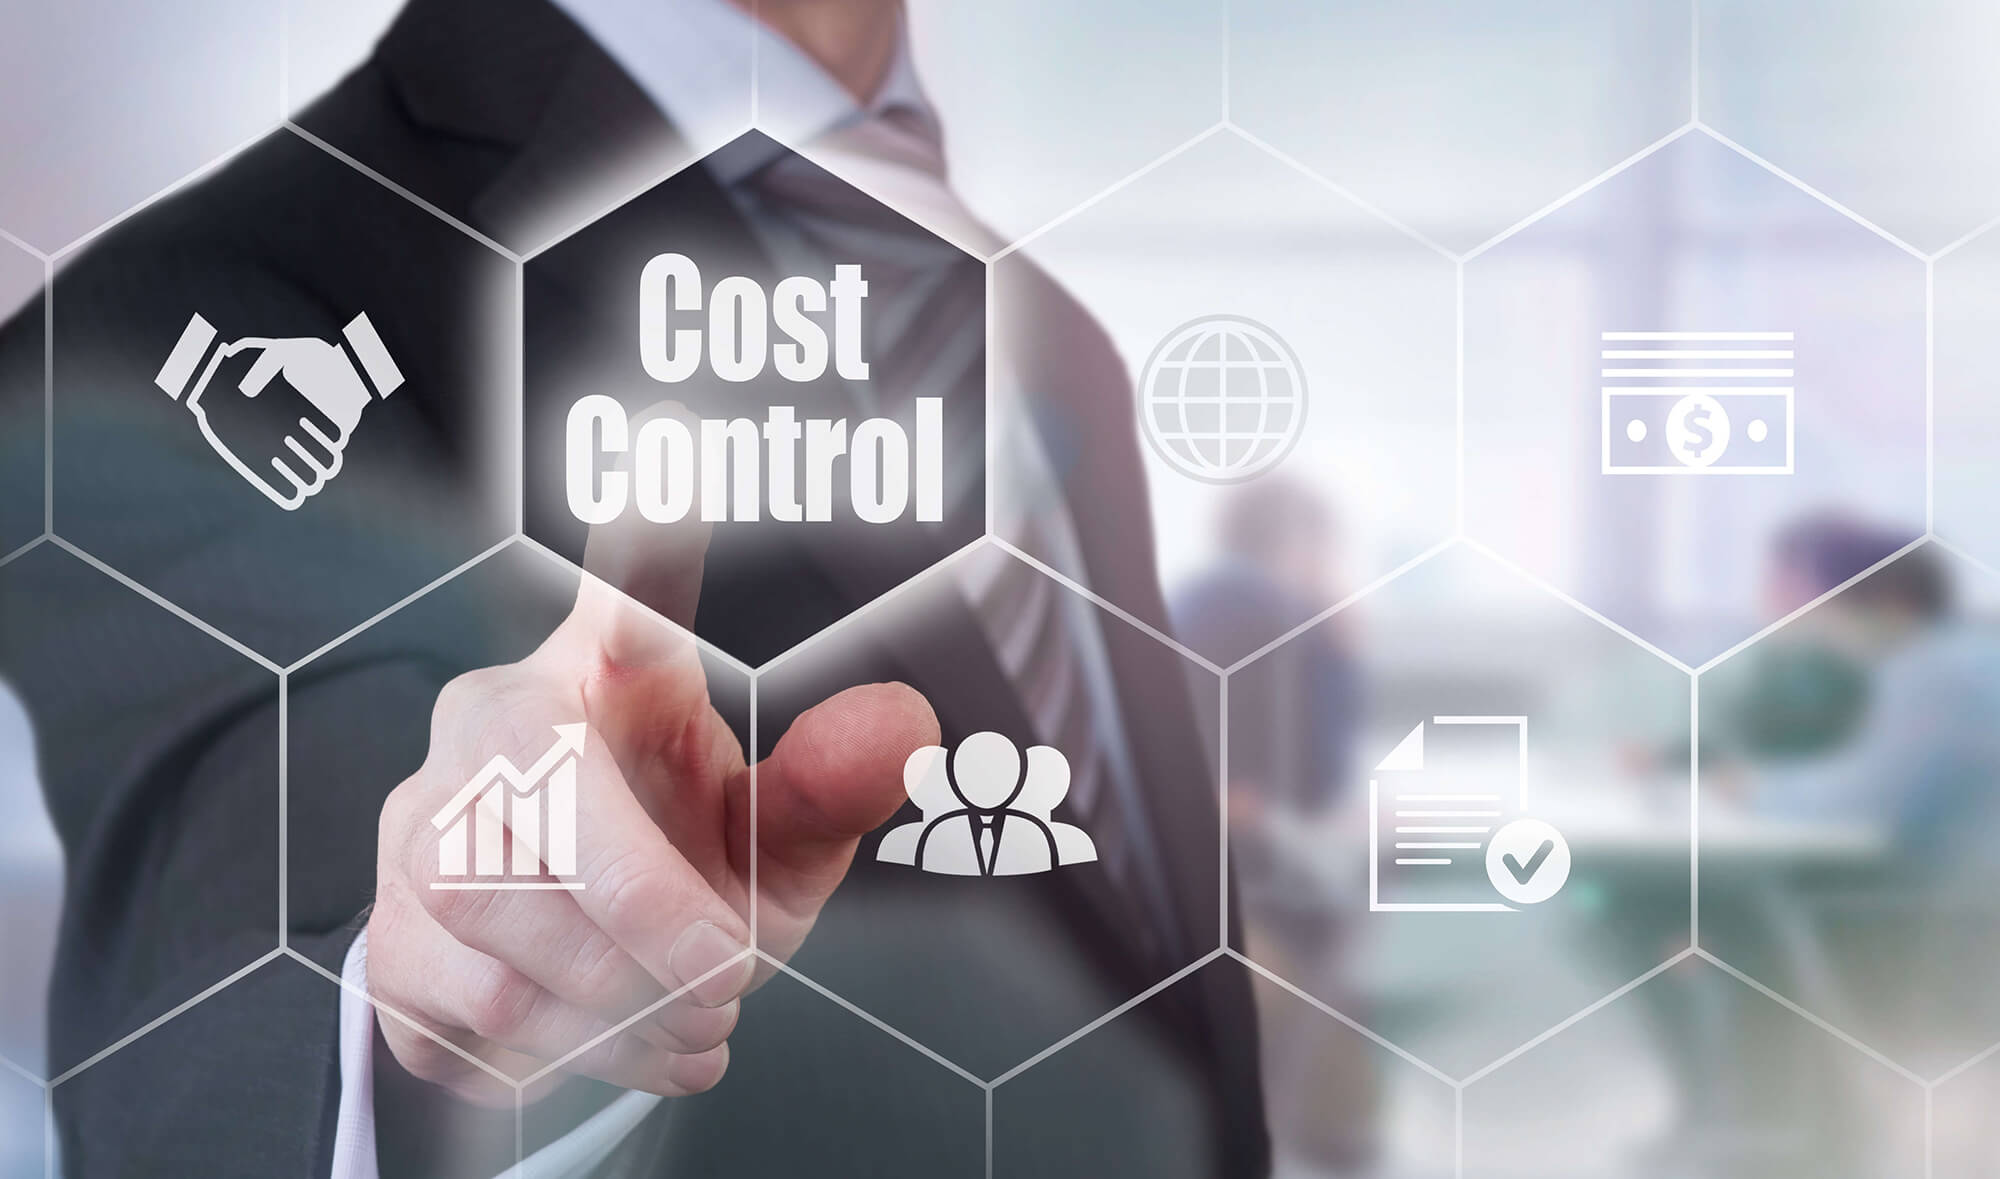 A business person choosing the Cost Control option